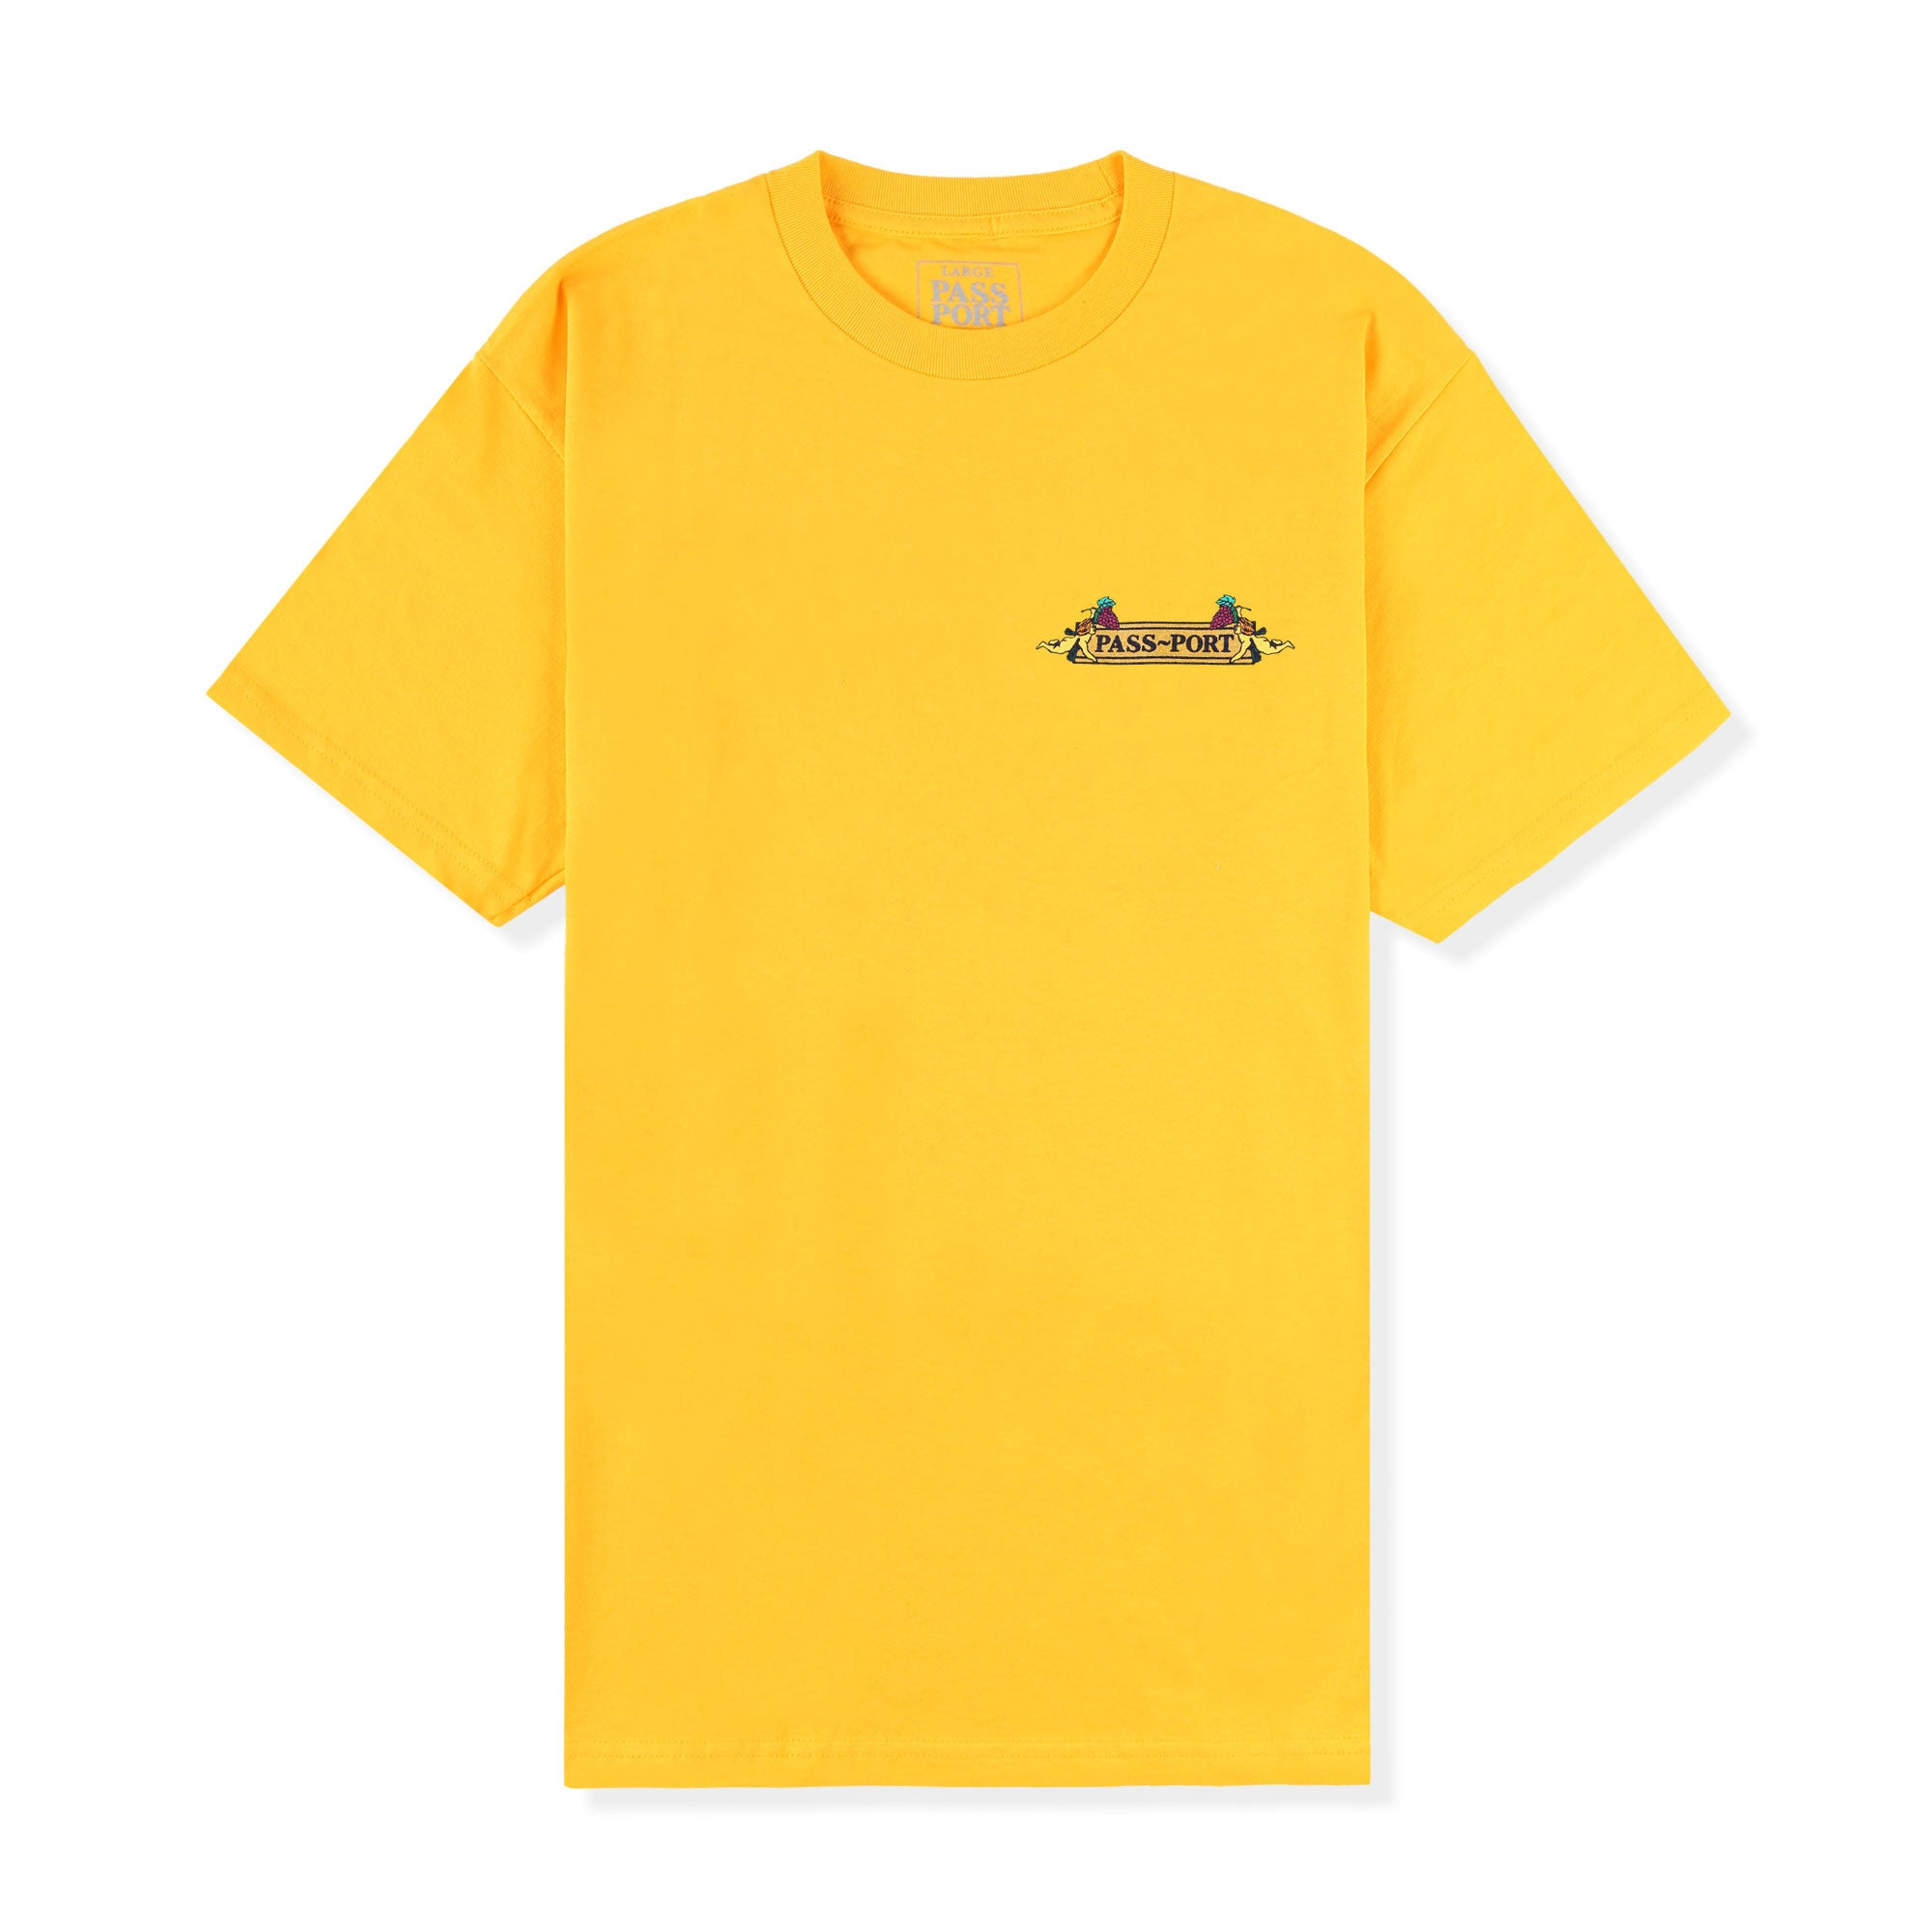 Passport Trickle Down Tee Product Photo #1